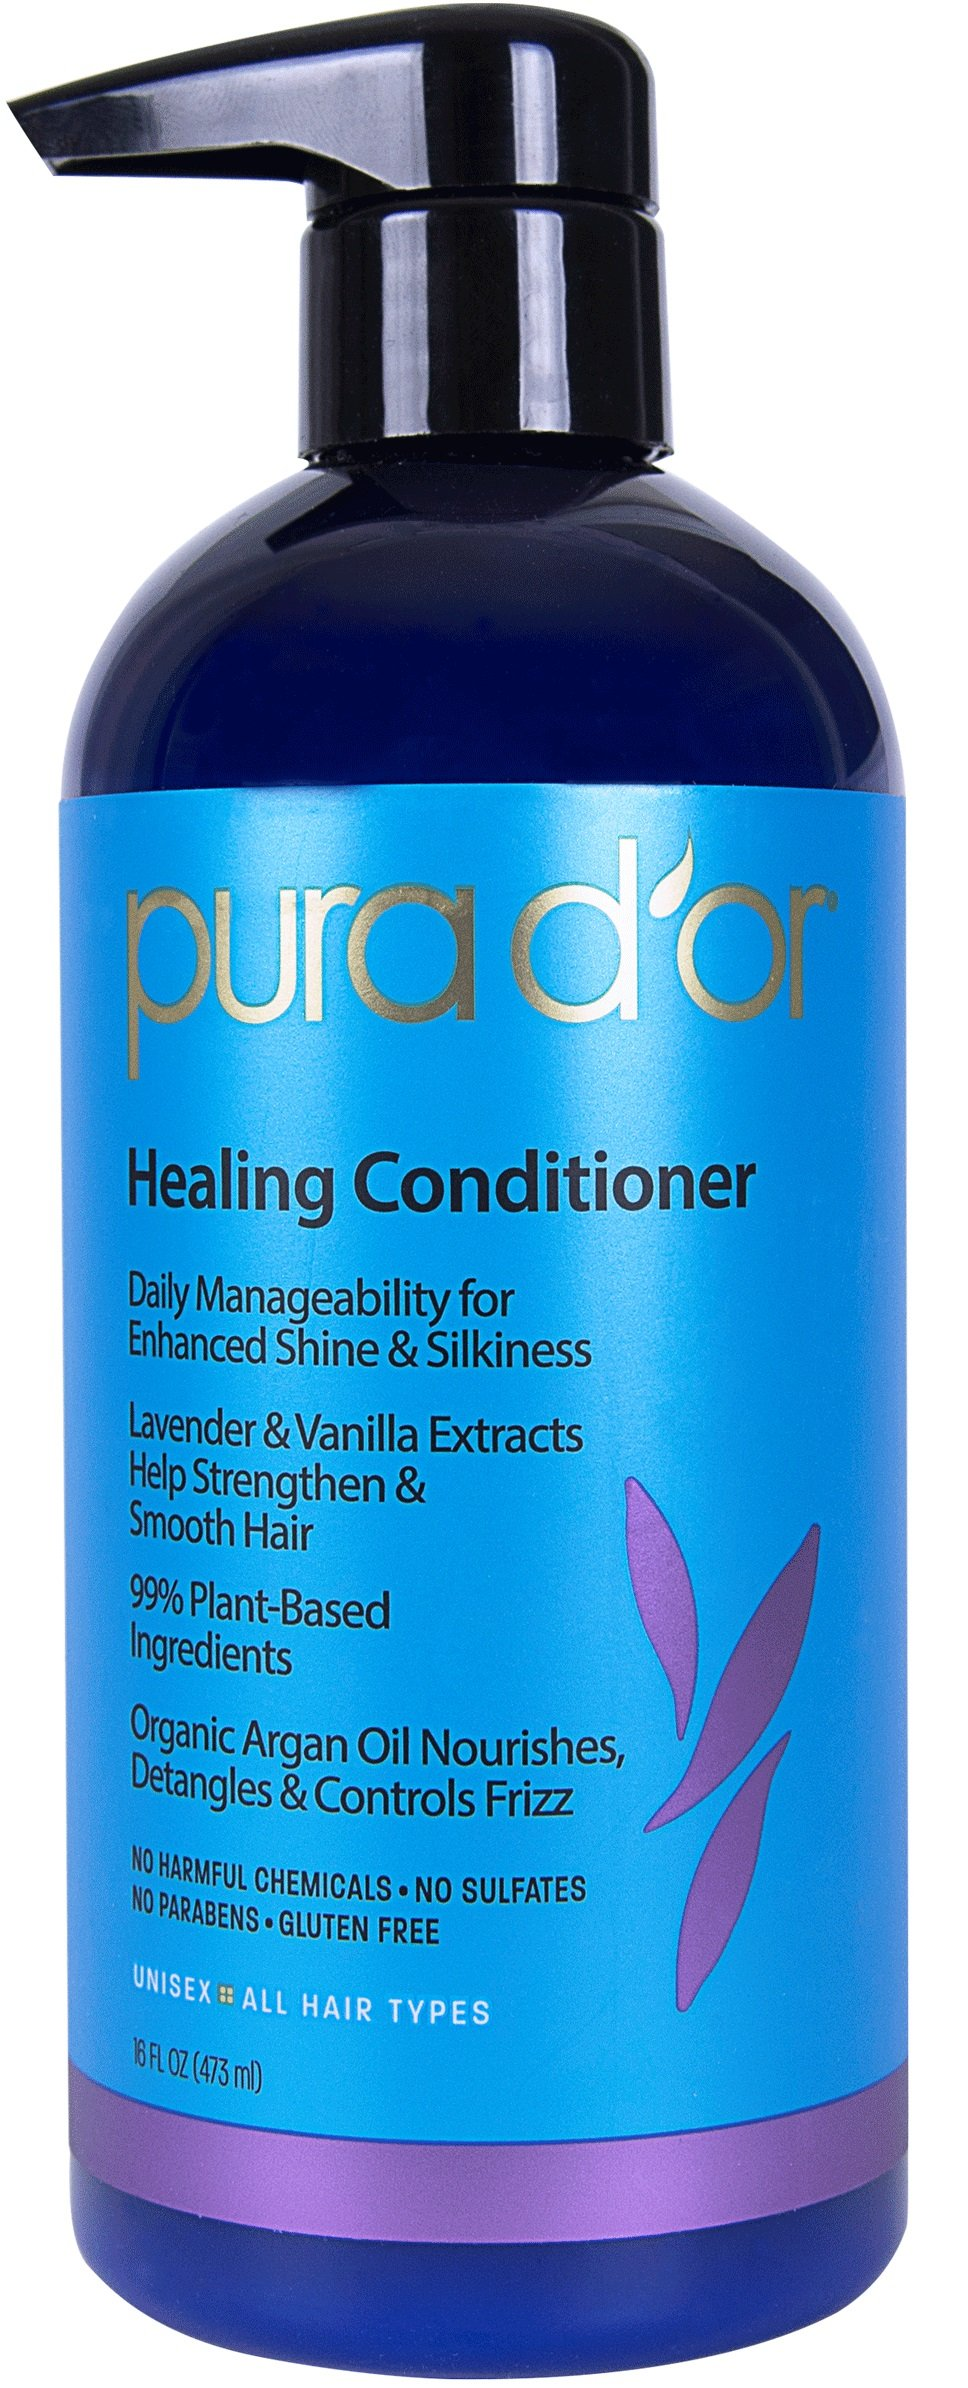 PURA D'OR Healing Conditioner Enhances Shine & Reduces Frizz, Sulfate Free Gentle Formula with Organic Argan Oil, Lavender and Vanilla, for All Hair Types, Men and Women, 16 Fl Oz (Packaging may vary)